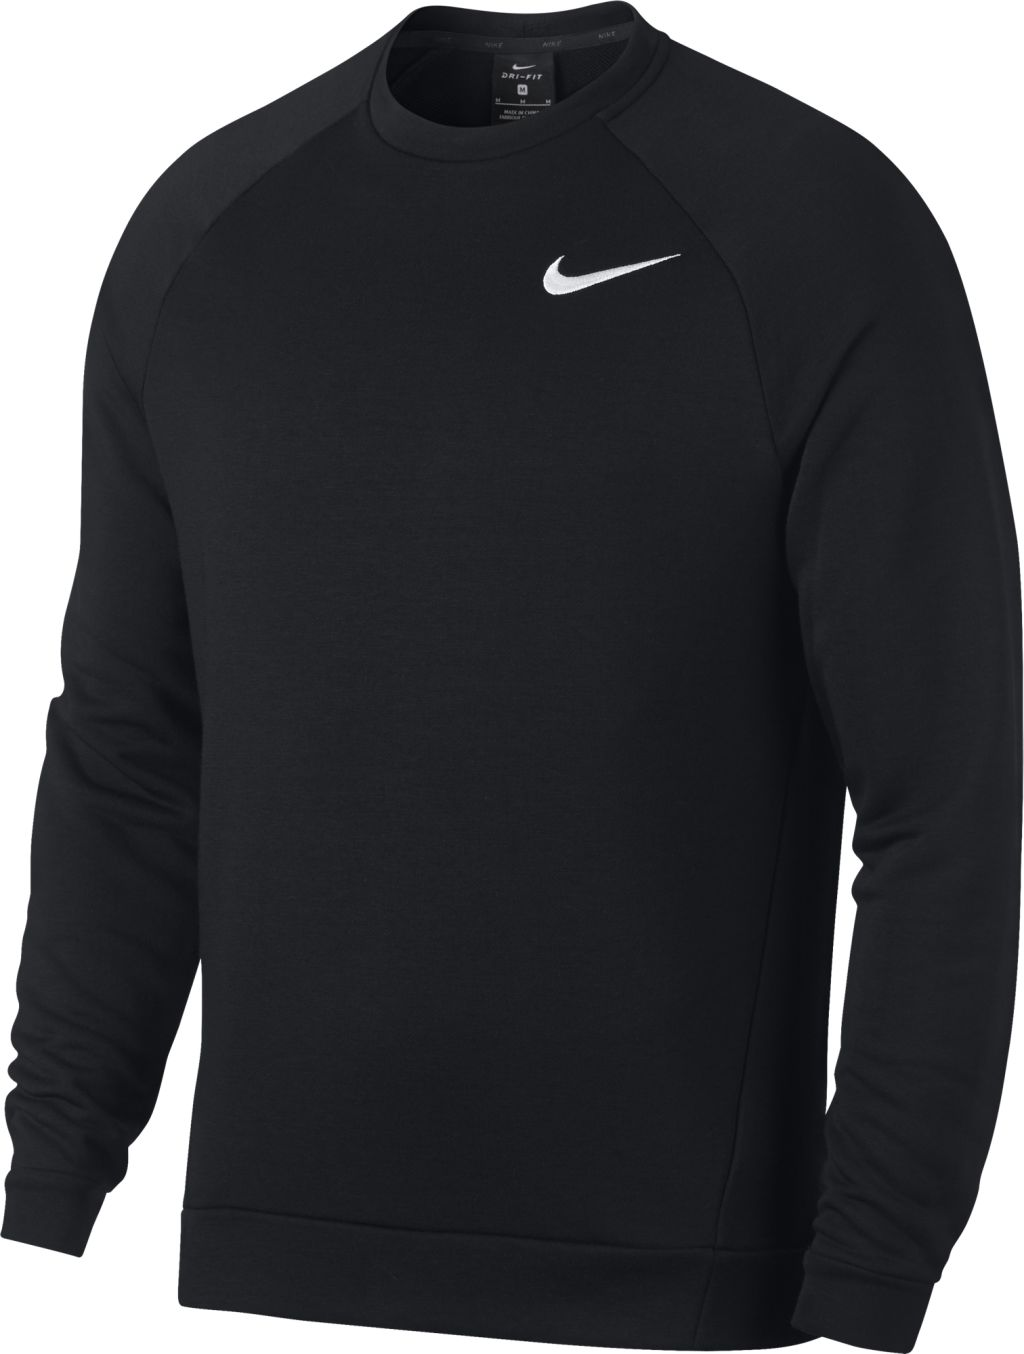 Nike Dry Training Top FLC Crew